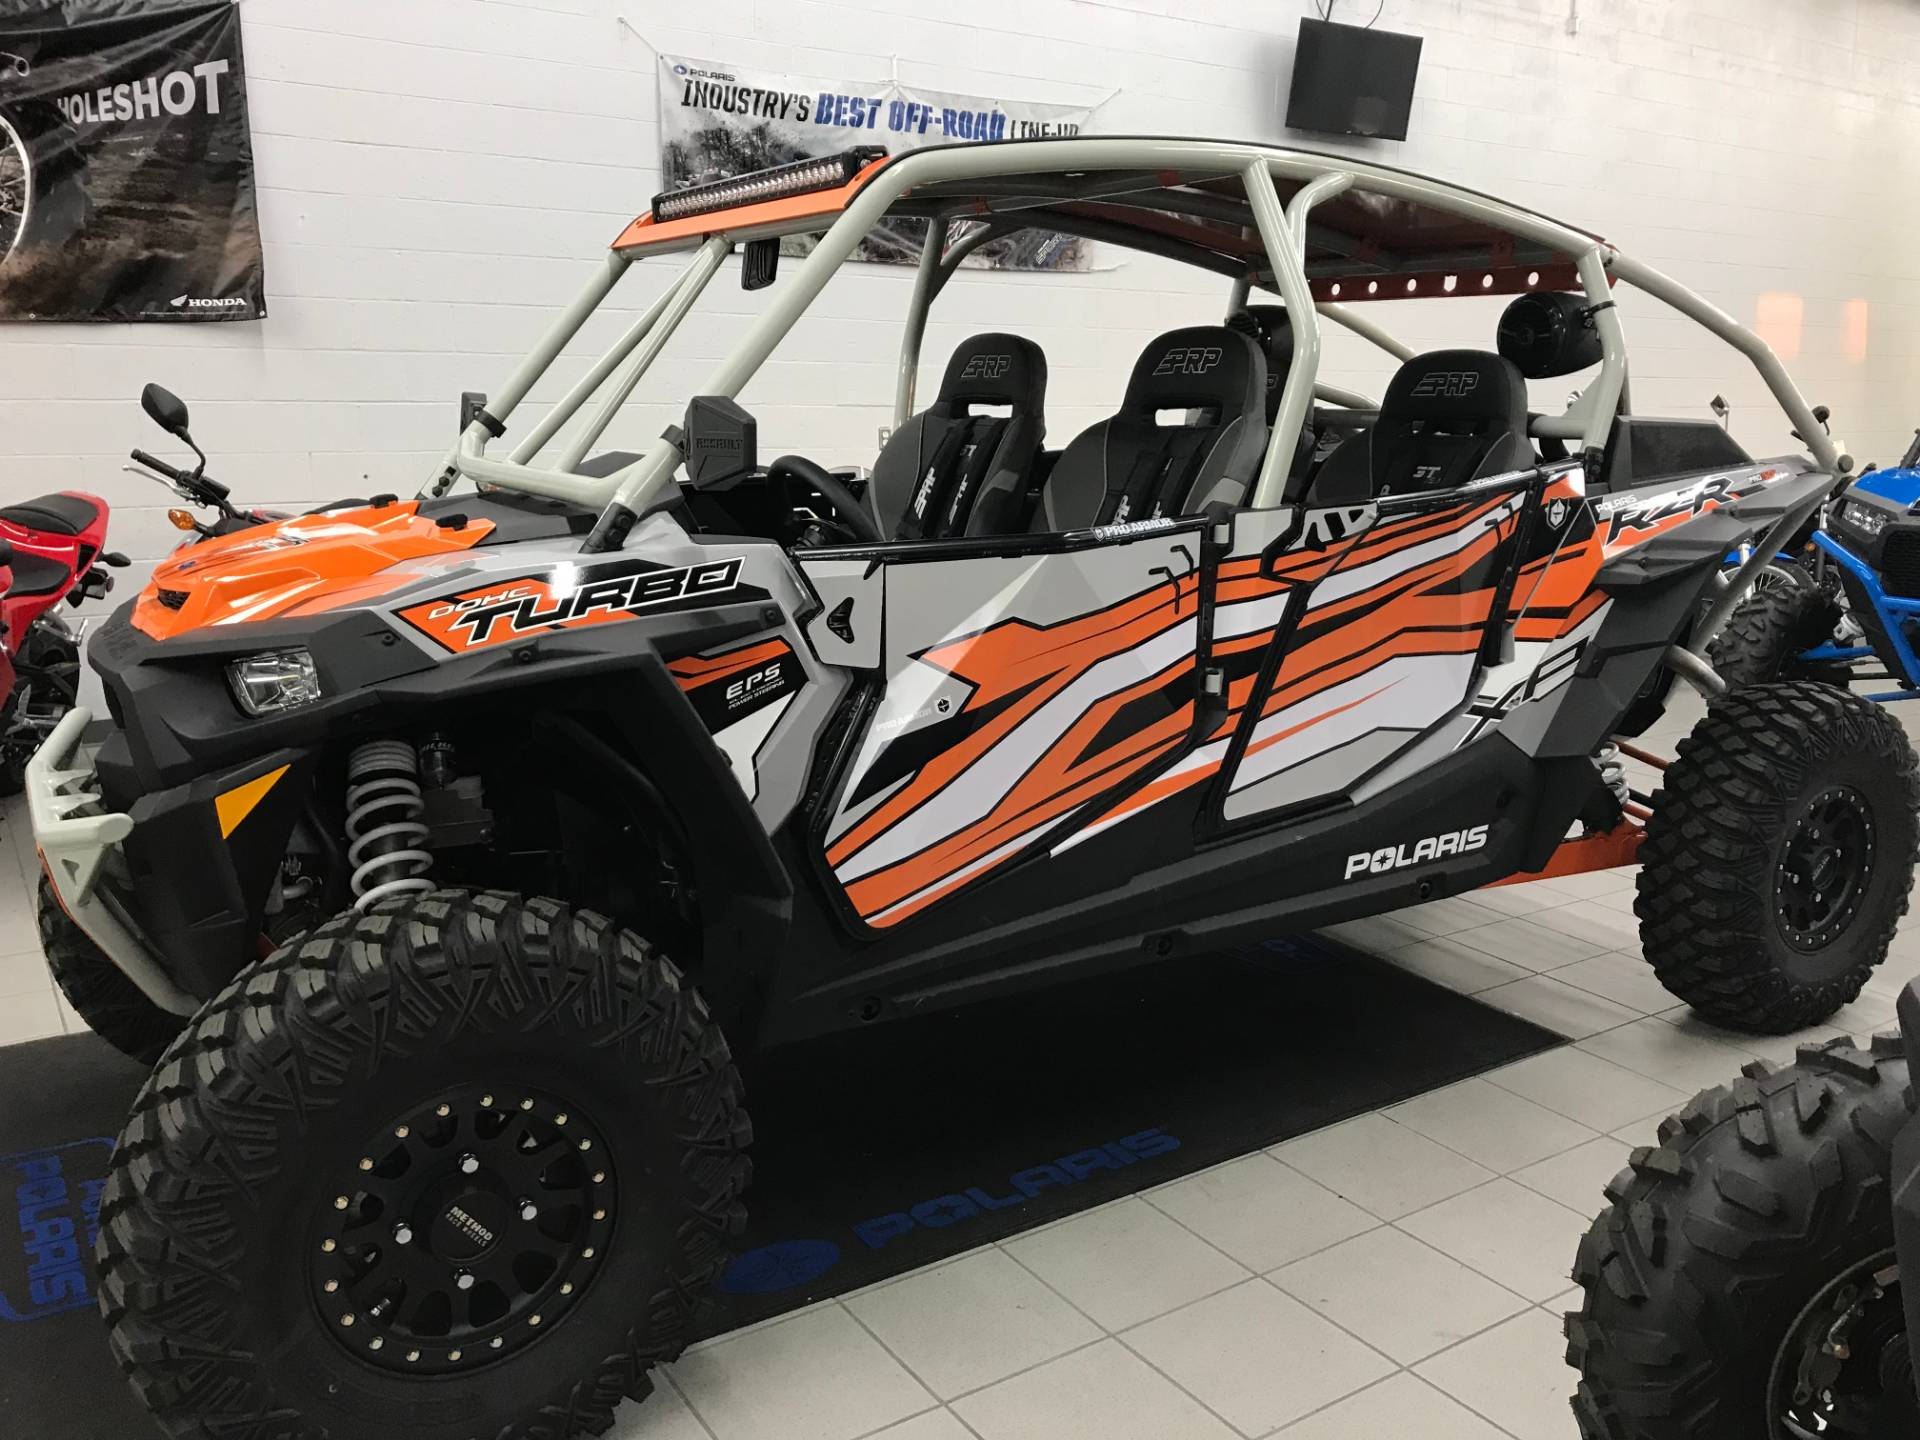 2018 Polaris RZR XP 4 Turbo EPS for sale 76910